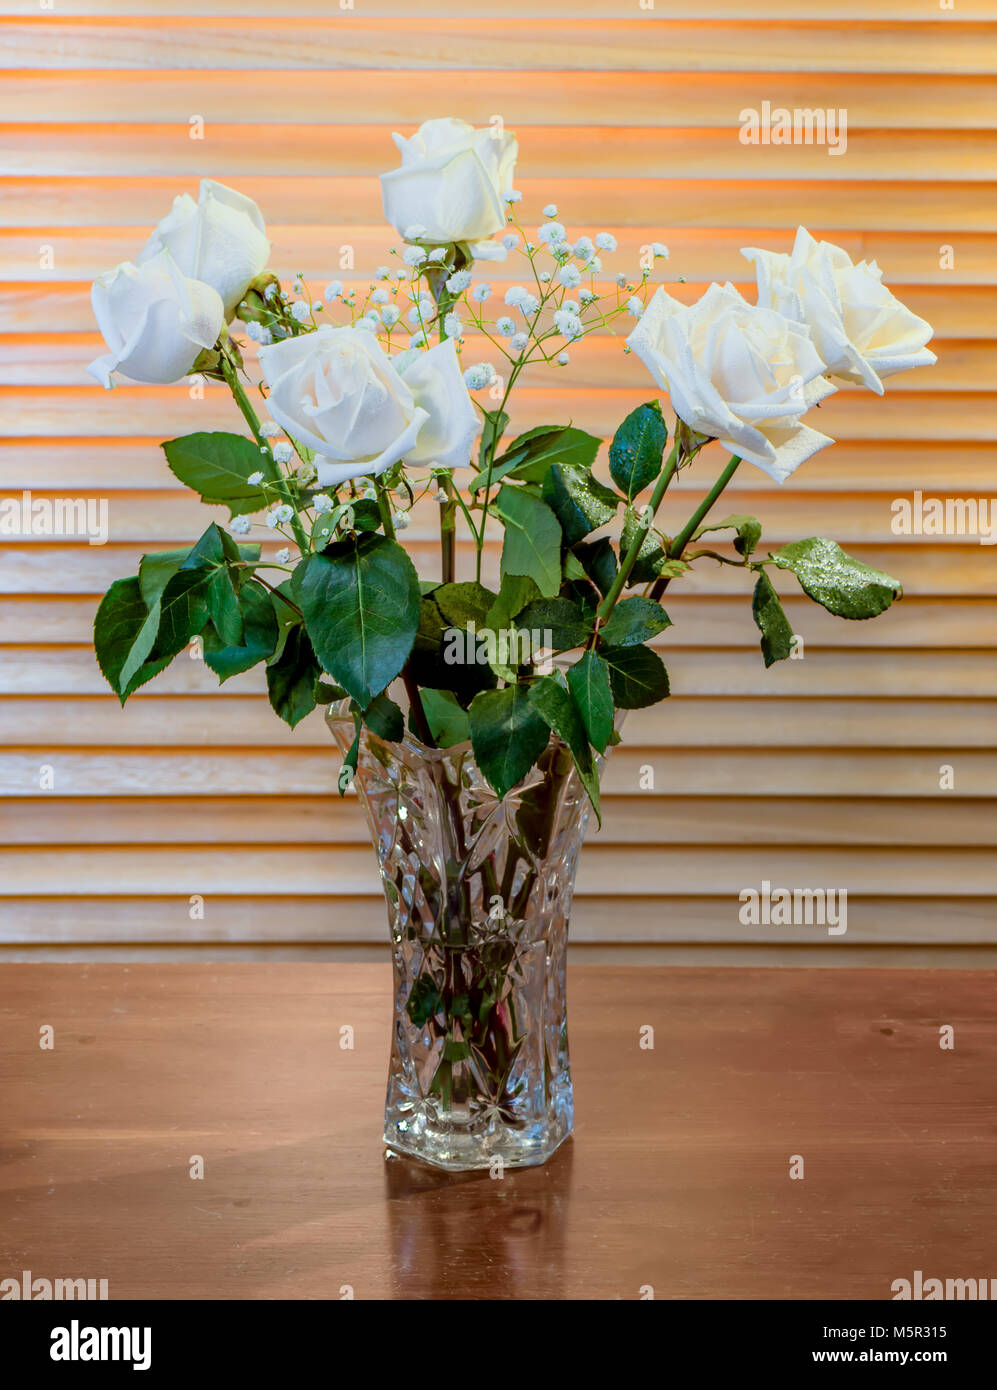 The Plant Is A Bouquet Of White Roses With Green Leaves And Small